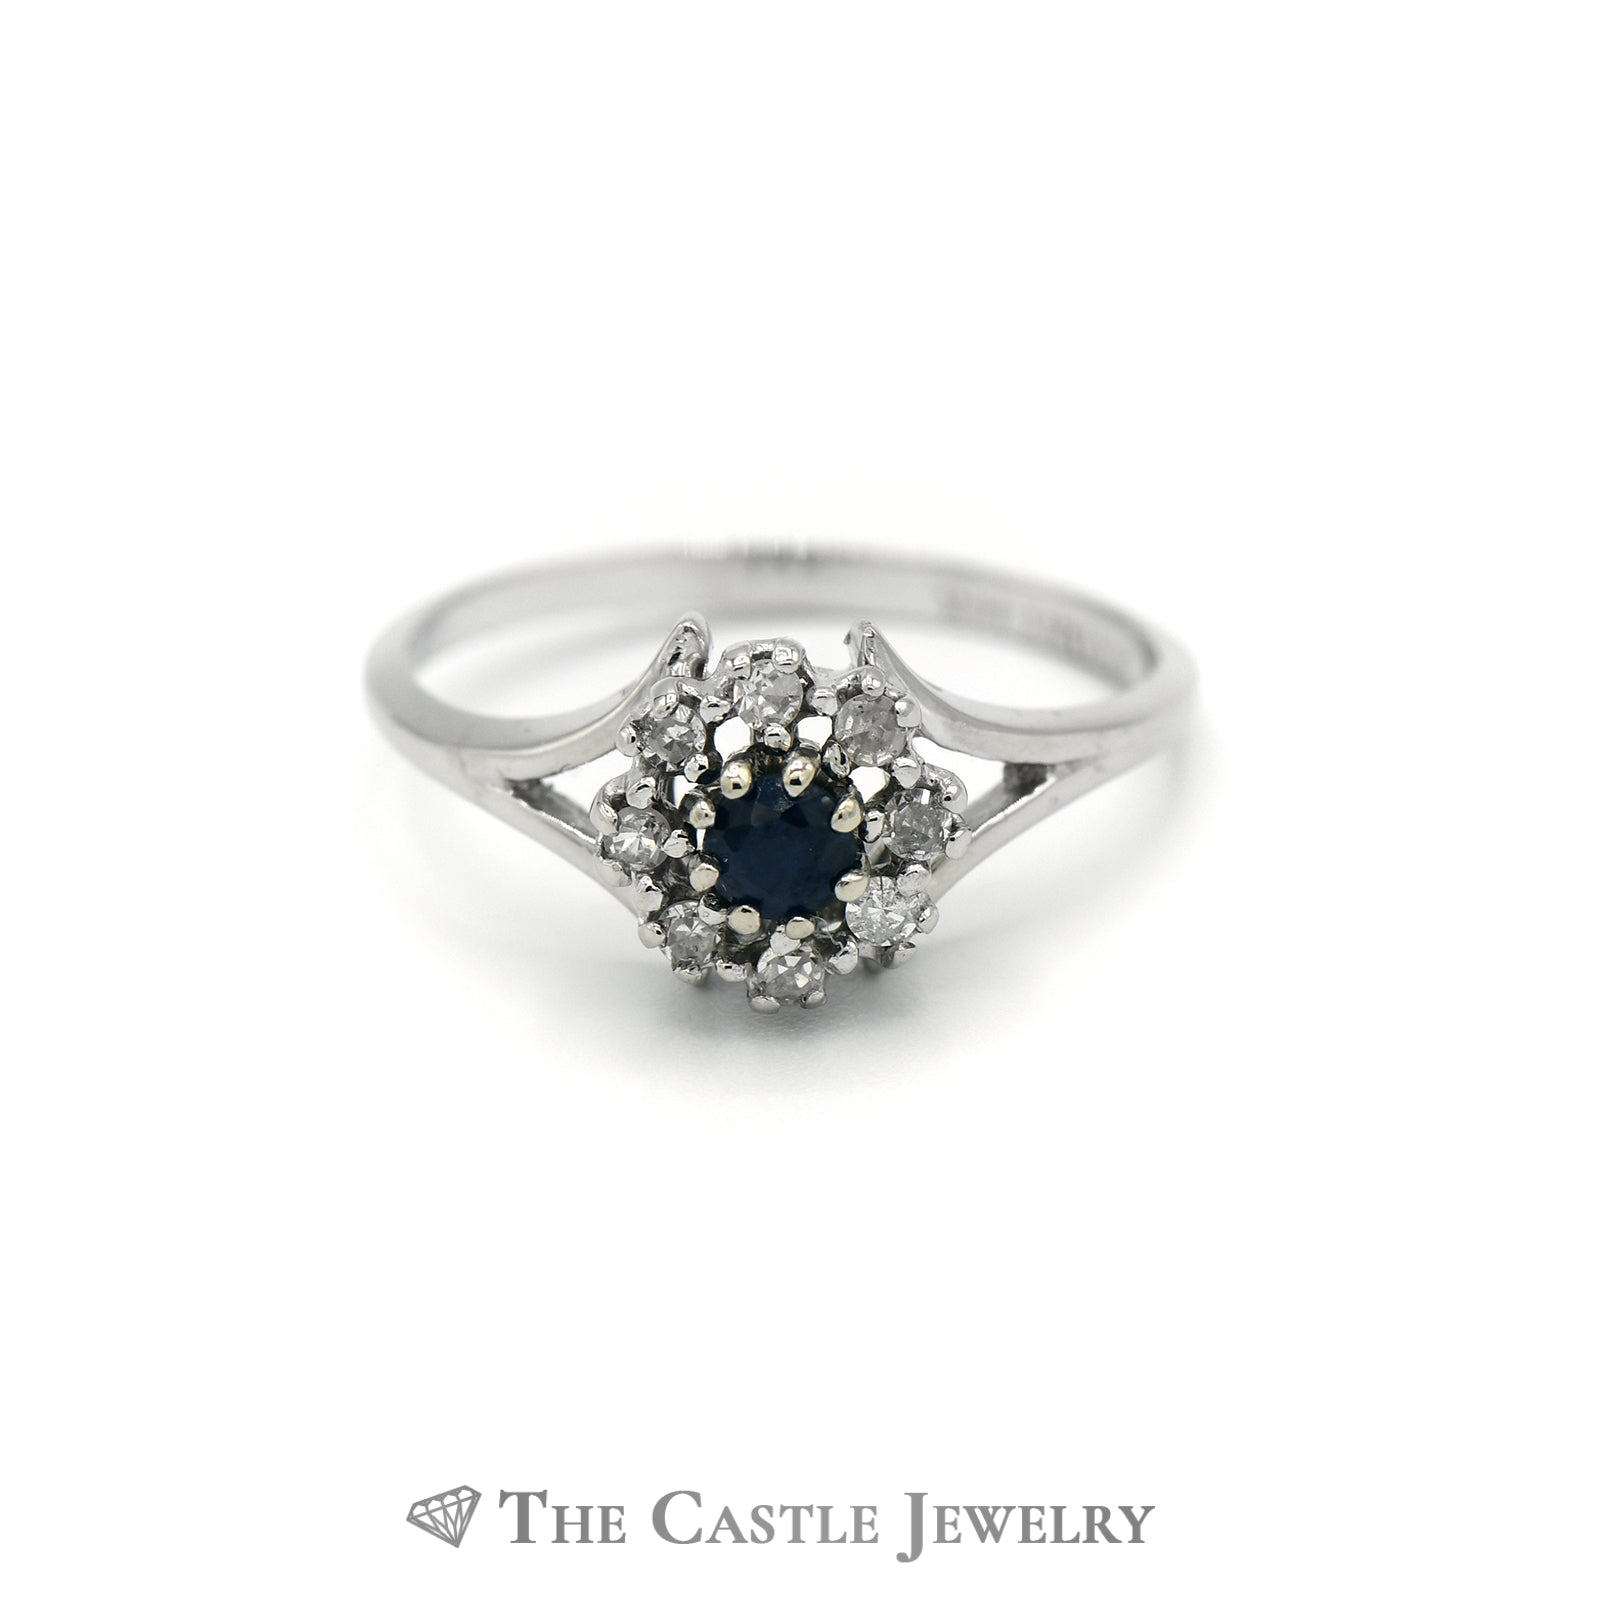 Lovely Round Sapphire Ring w/ Diamond Halo & Split Style Mounting in White Gold